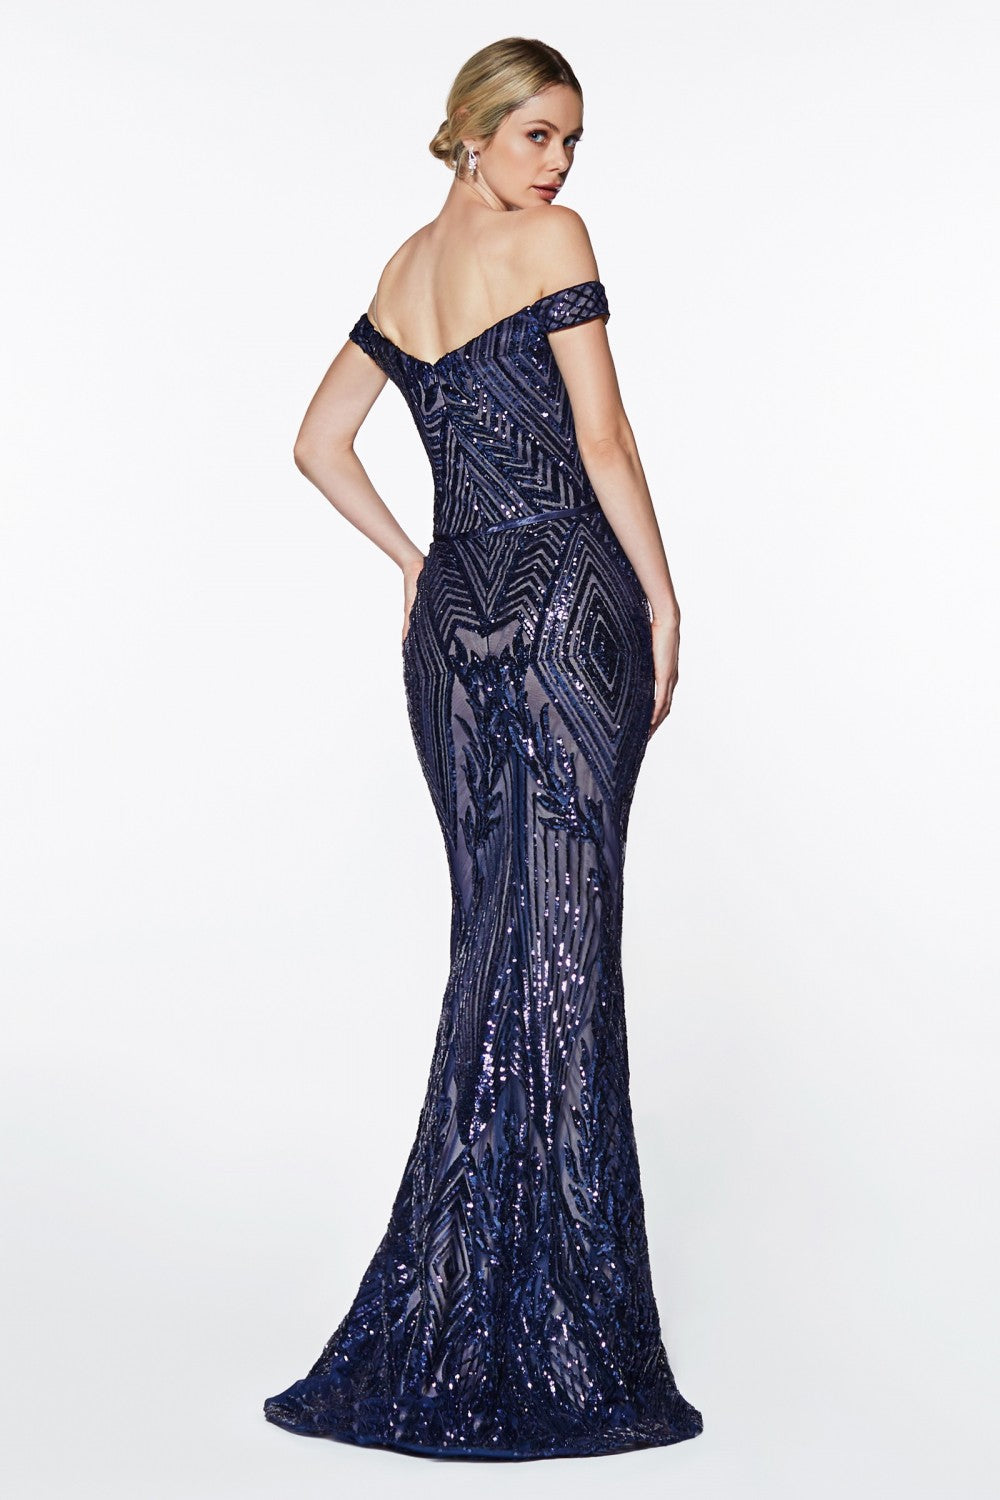 Off The Shoulder Gown With Geometric Sequin Detail And Sweetheart Neckline